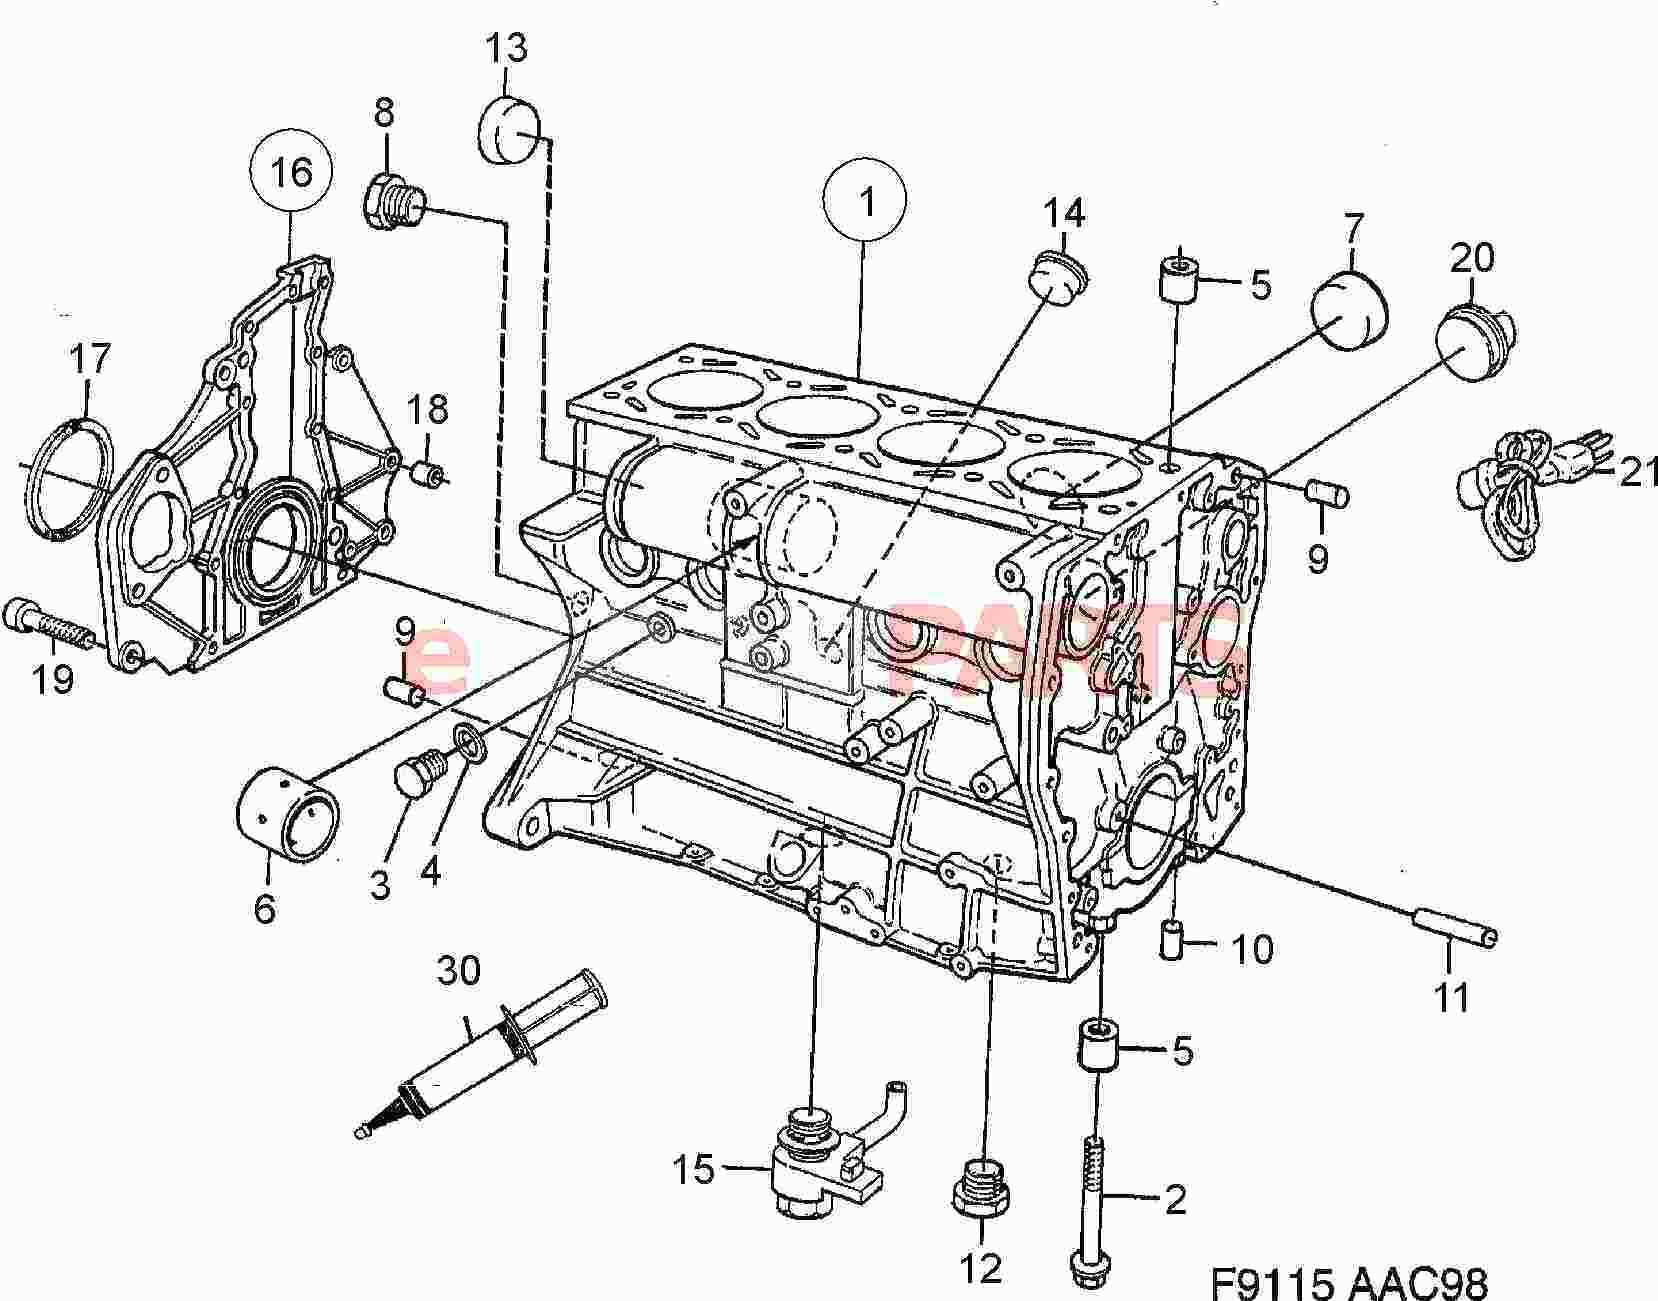 Camry 4 Cylinder Engine Diagram List Of Schematic Circuit 5sfe Distributor Wiring 2002 Toyota 1999 Rh Detoxicrecenze Com 1998